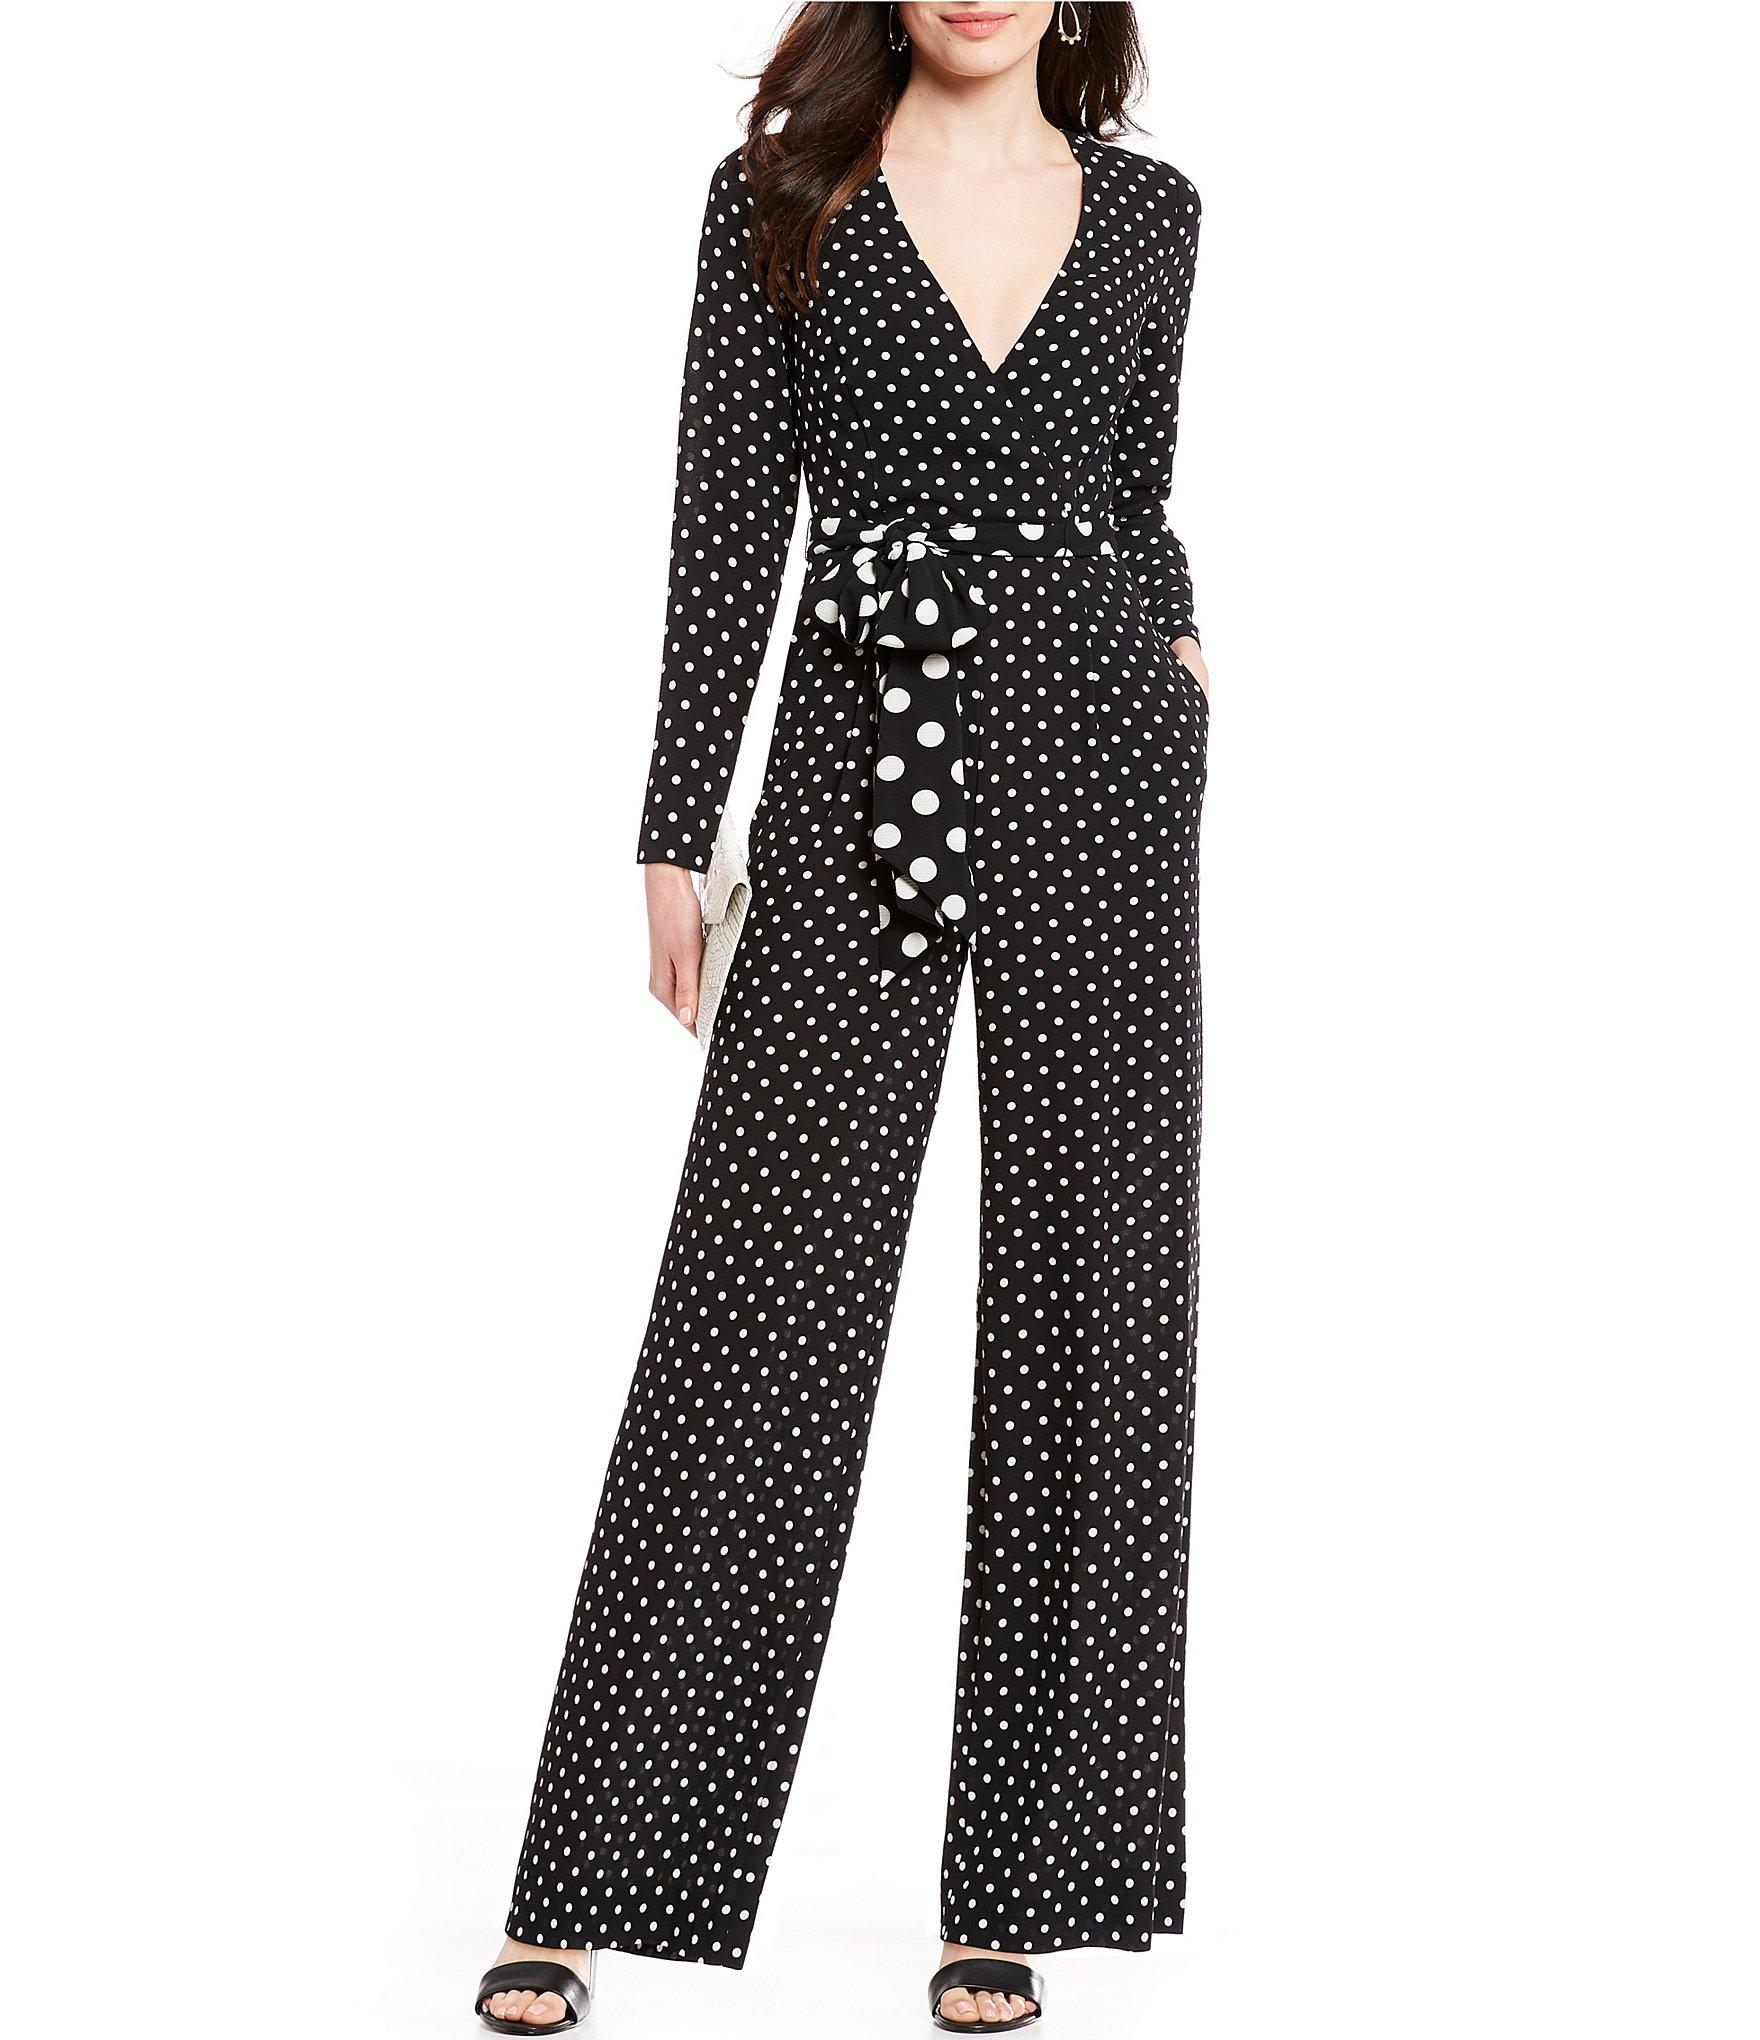 99aa212db3d4e Lyst - Eliza J Polka Dot V-neck Tie Waist Jumpsuit in Black